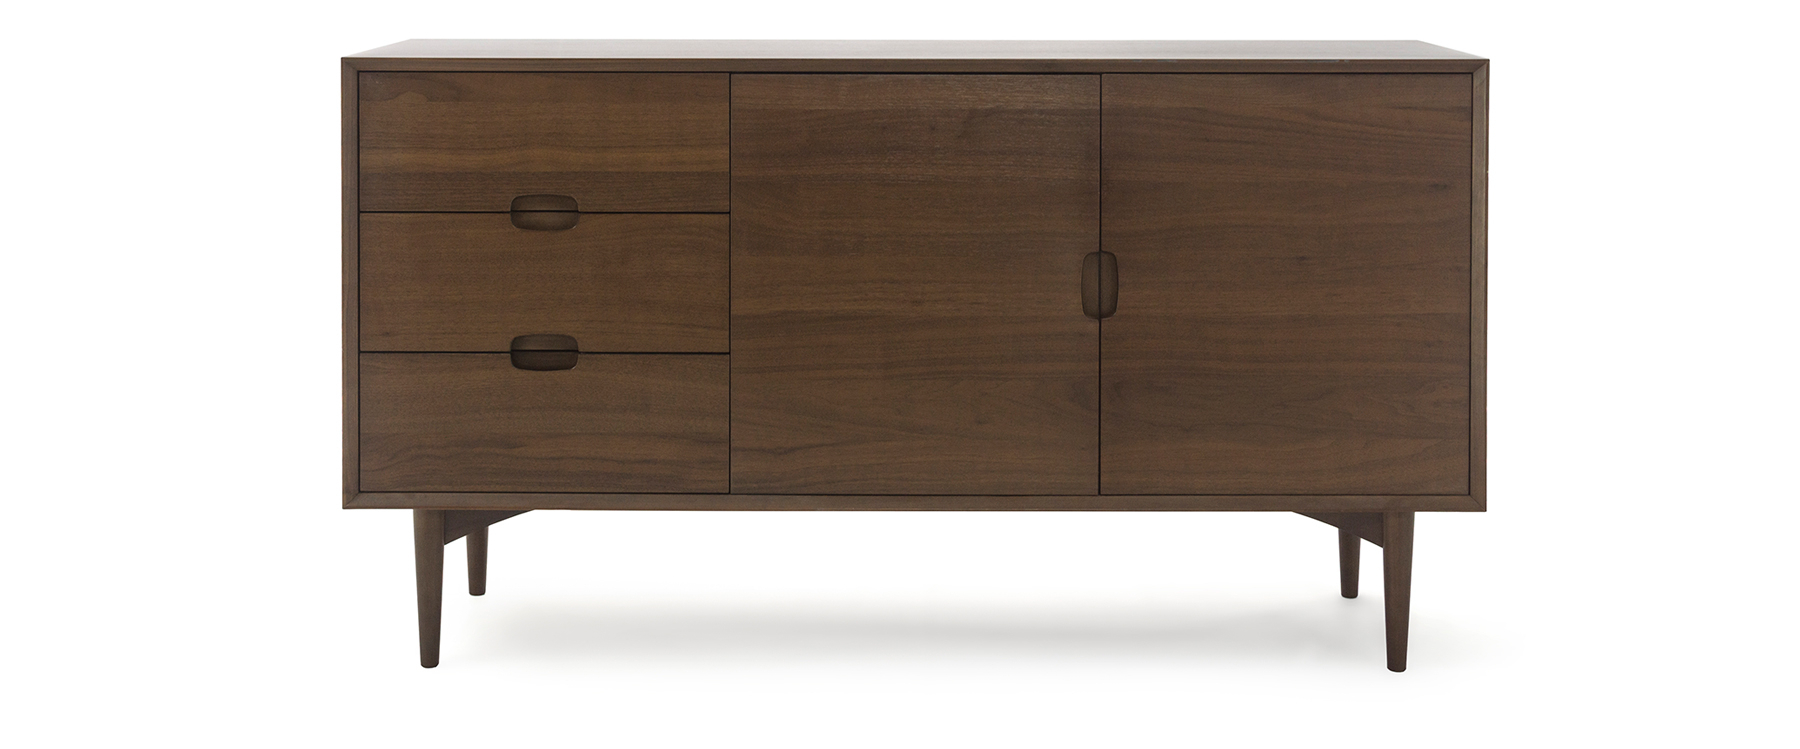 Most Recently Released Sideboard Furniture & Cabinets (View 9 of 20)